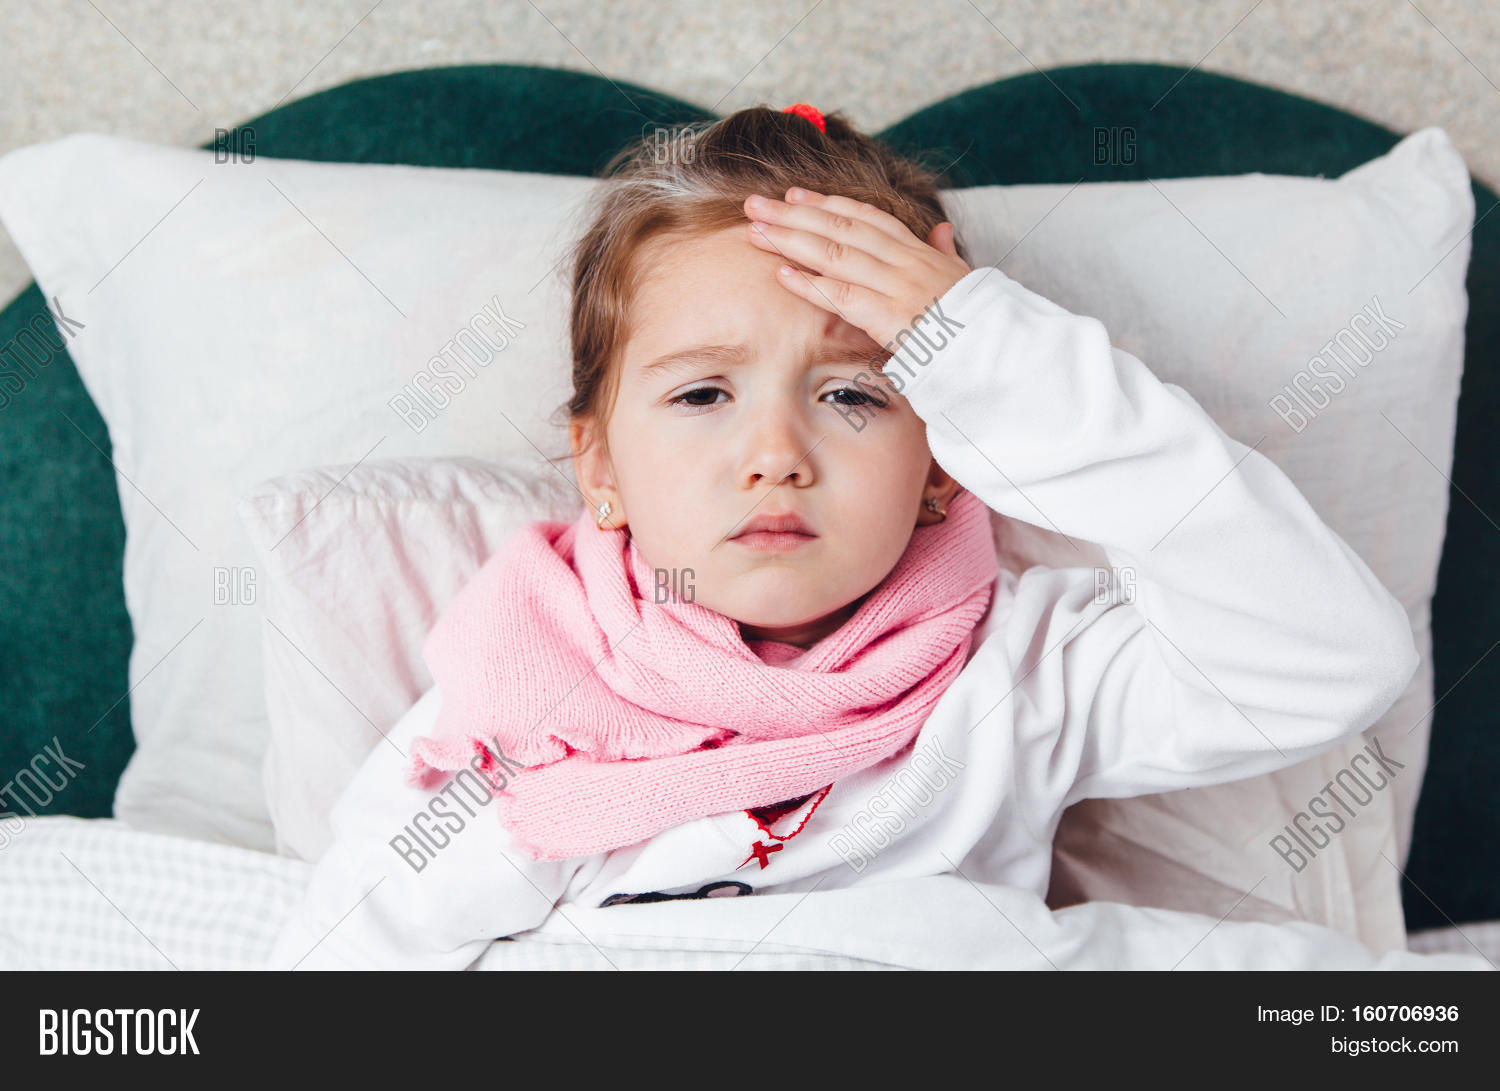 Sick kid lying bed image photo free trial bigstock sick kid lying in the bed and touch her forehaed altavistaventures Gallery